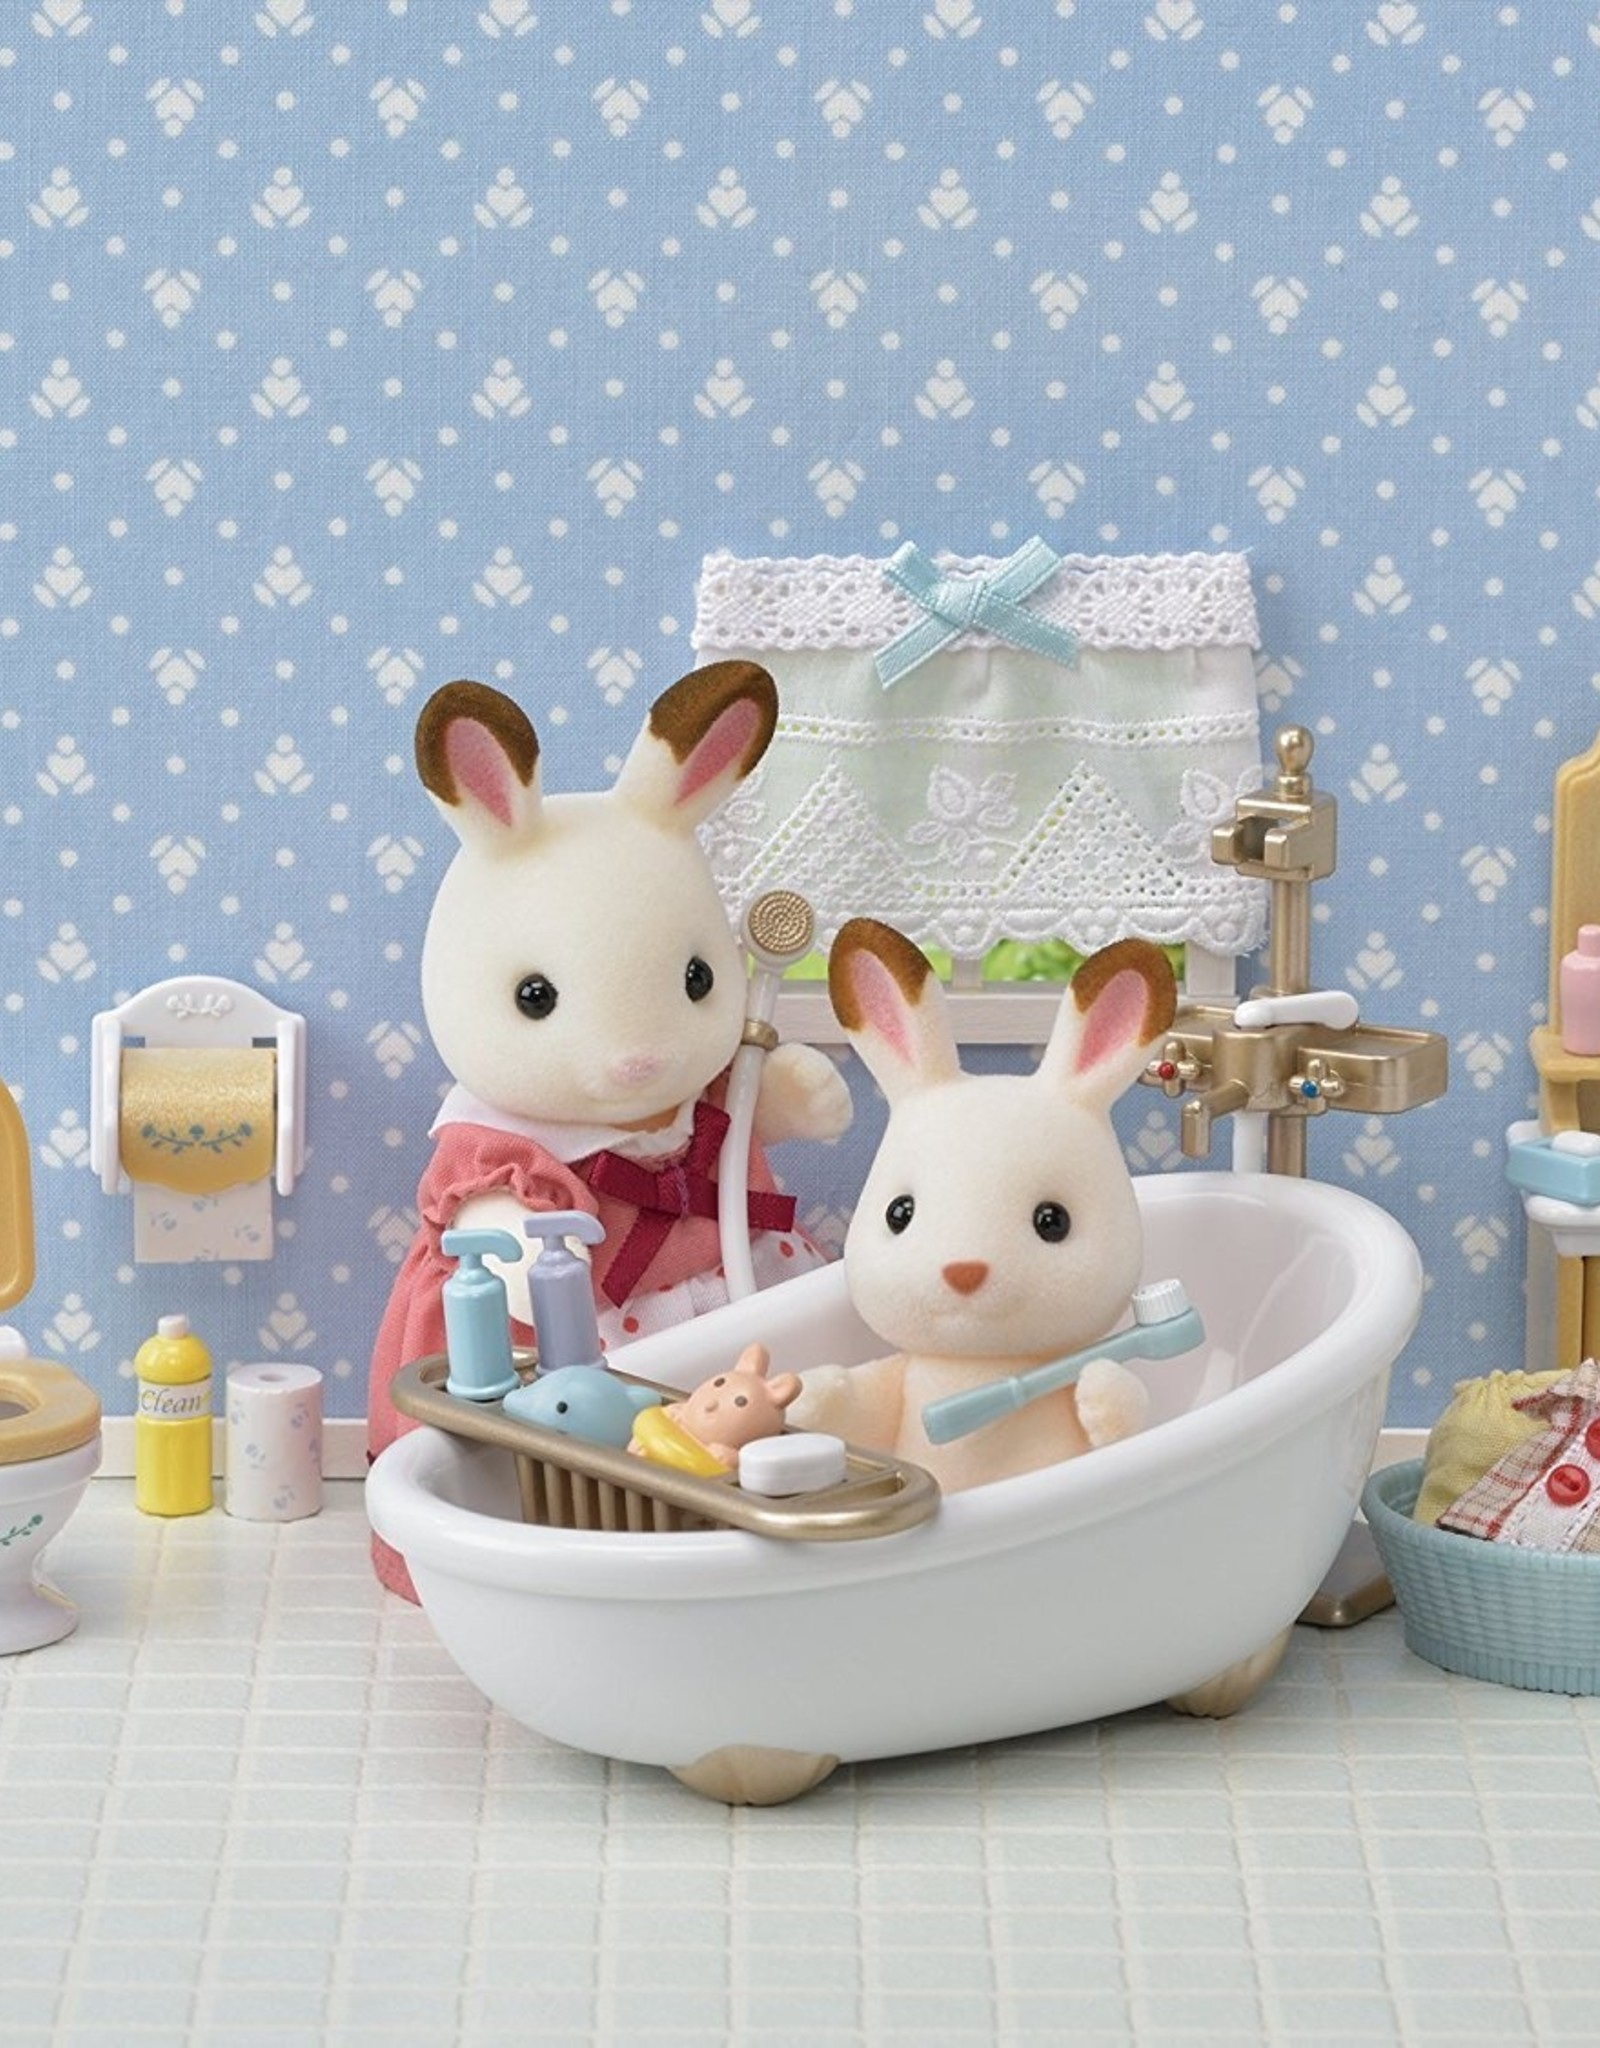 Sylvanian Families Sylvanian Families - Country Bathroom Set